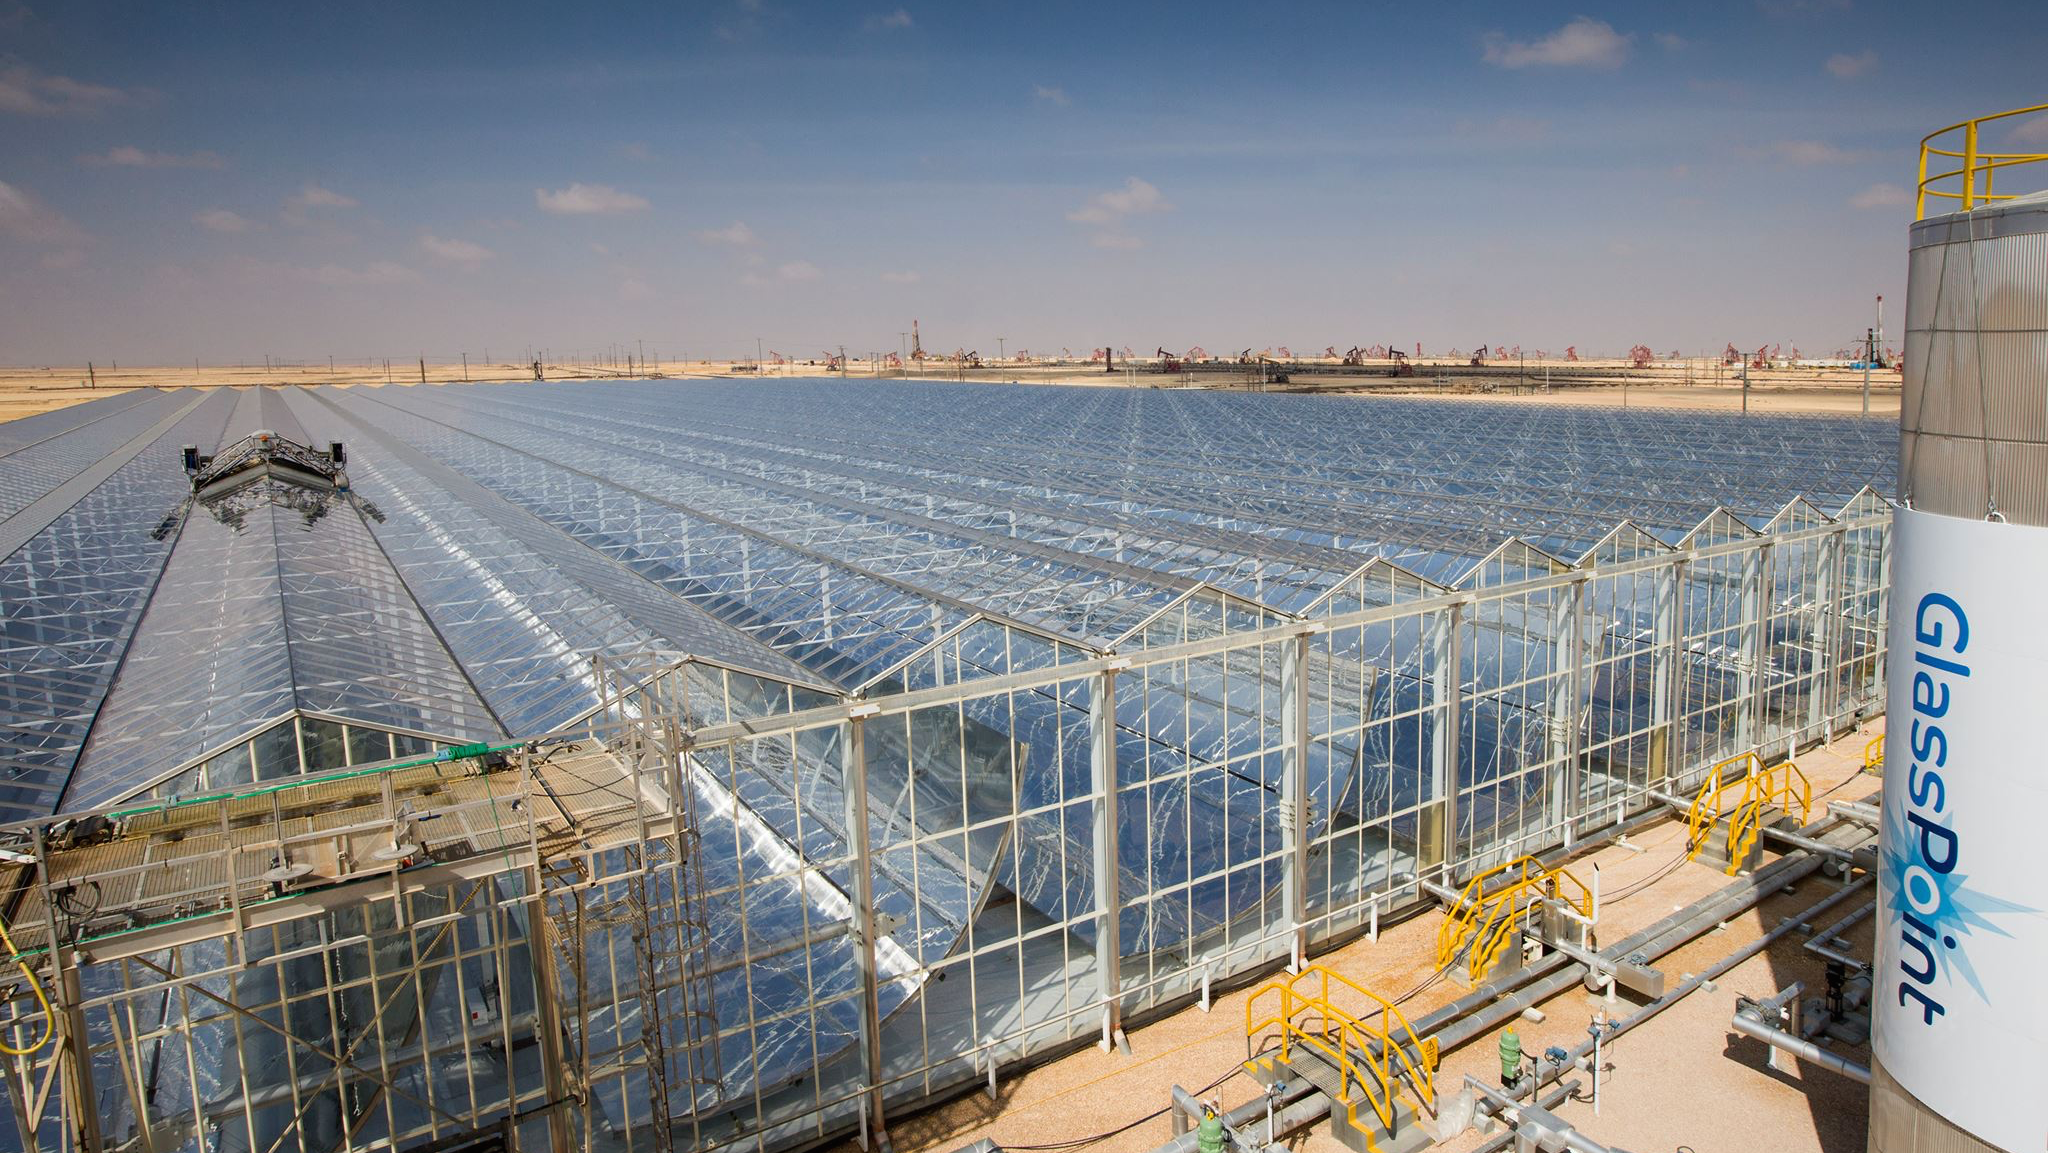 e of the world s largest solar parks set to power an Omani oil field